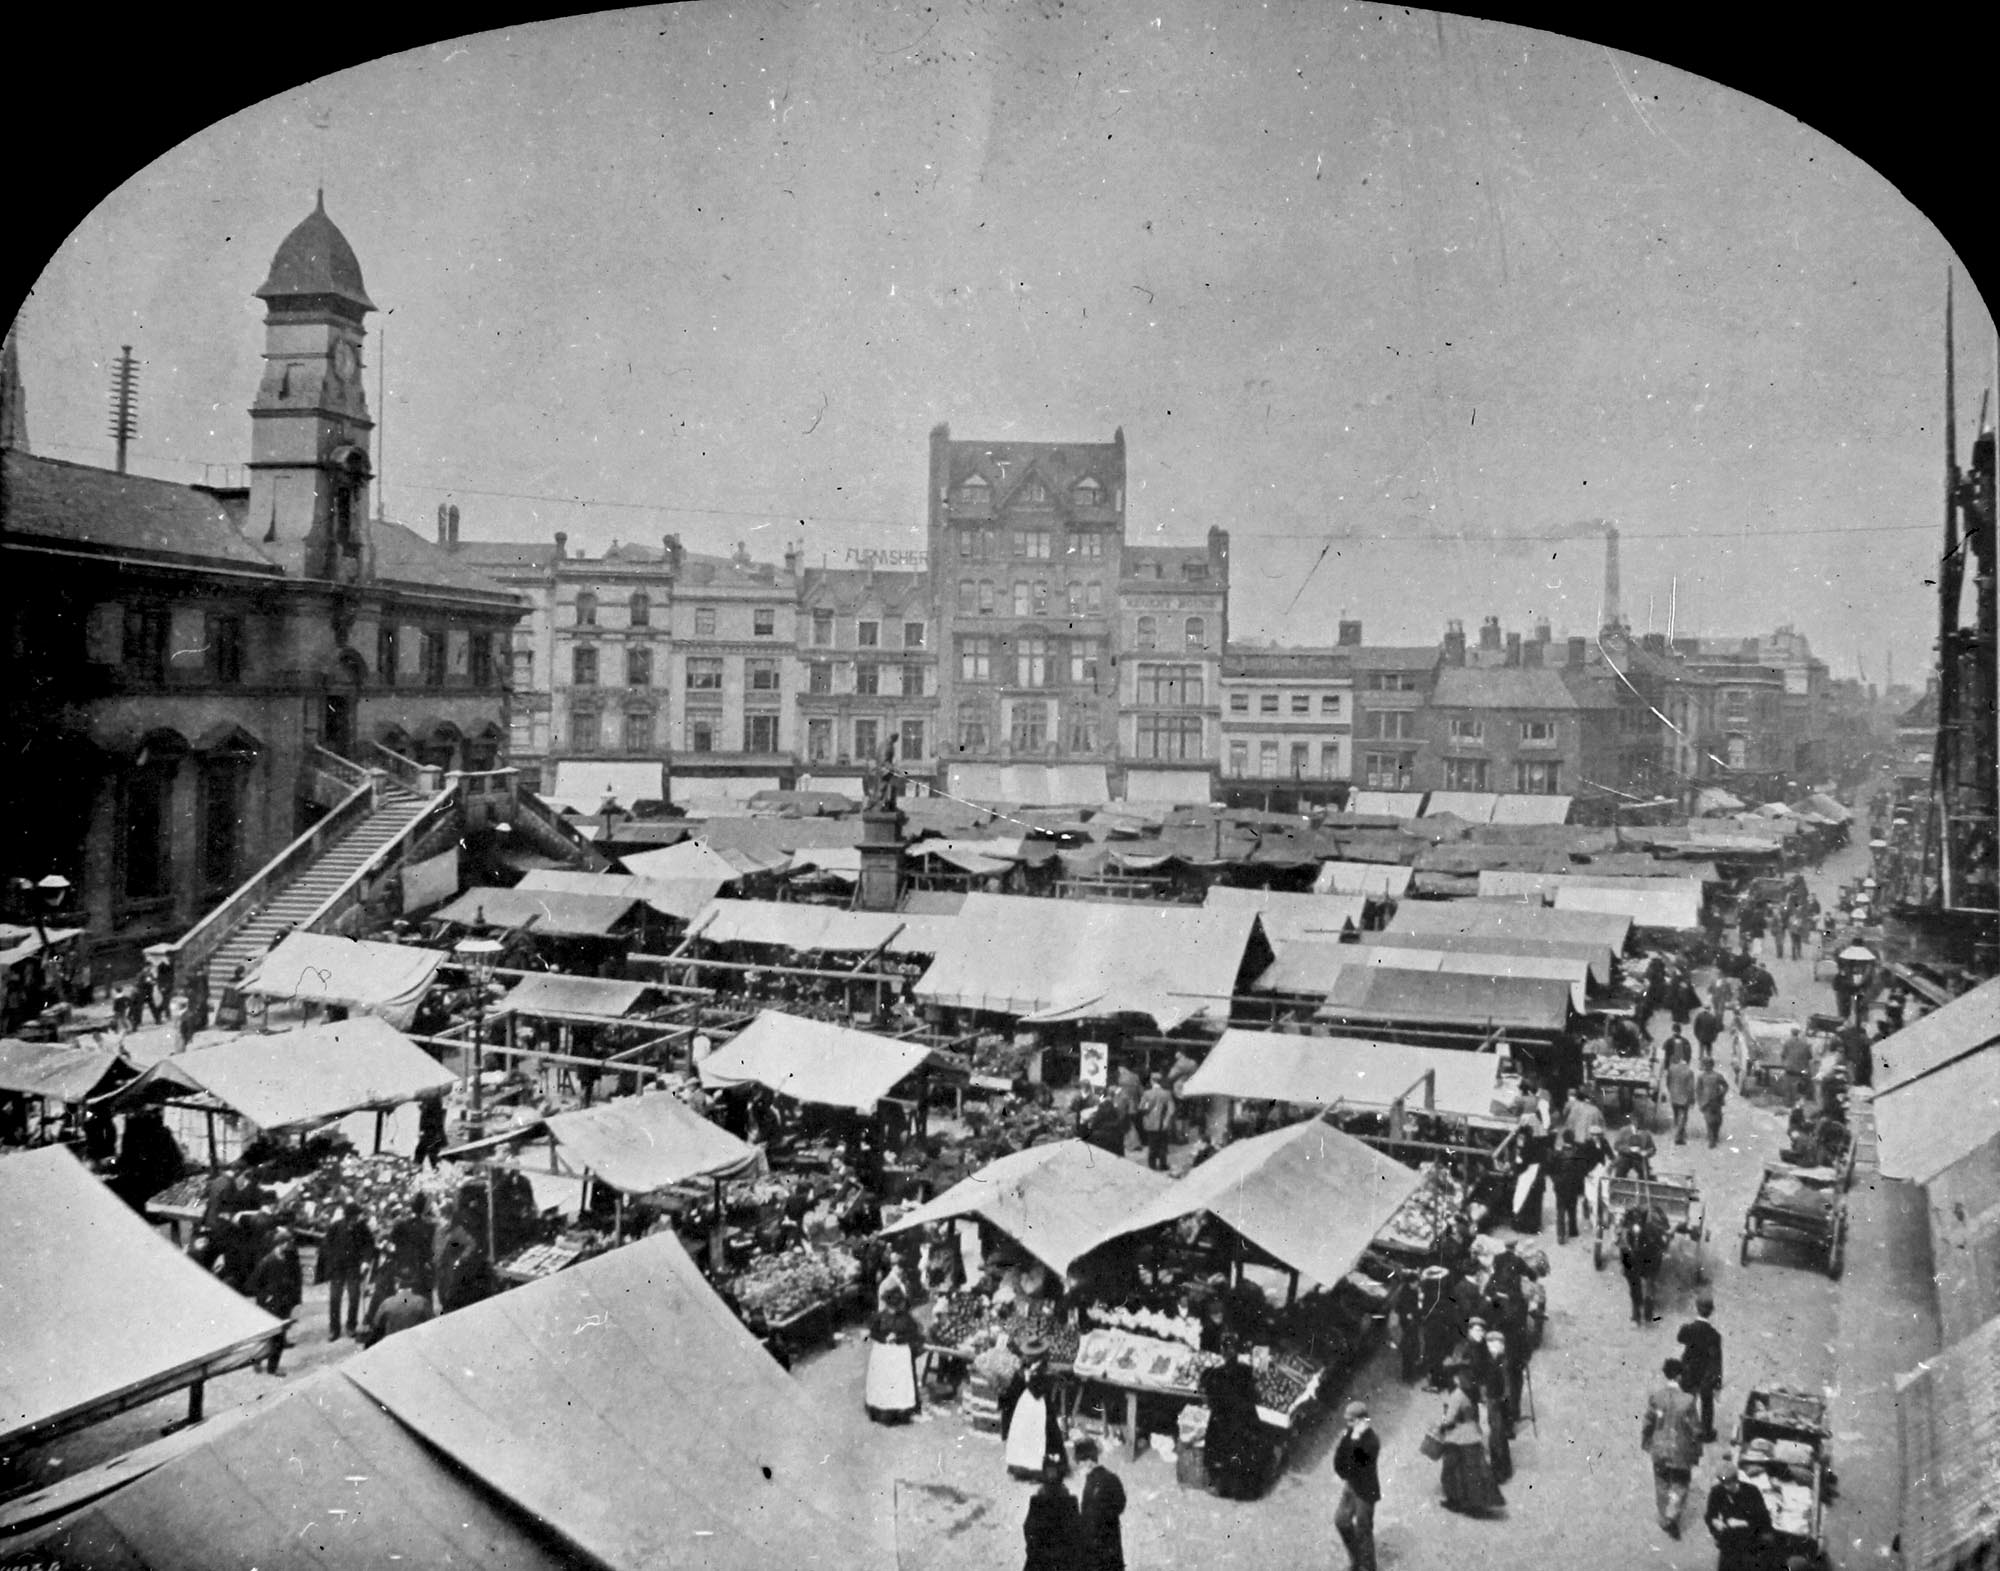 Looking across a busy day at Leicester Market, pre 1900 - Leicestershire Record Office